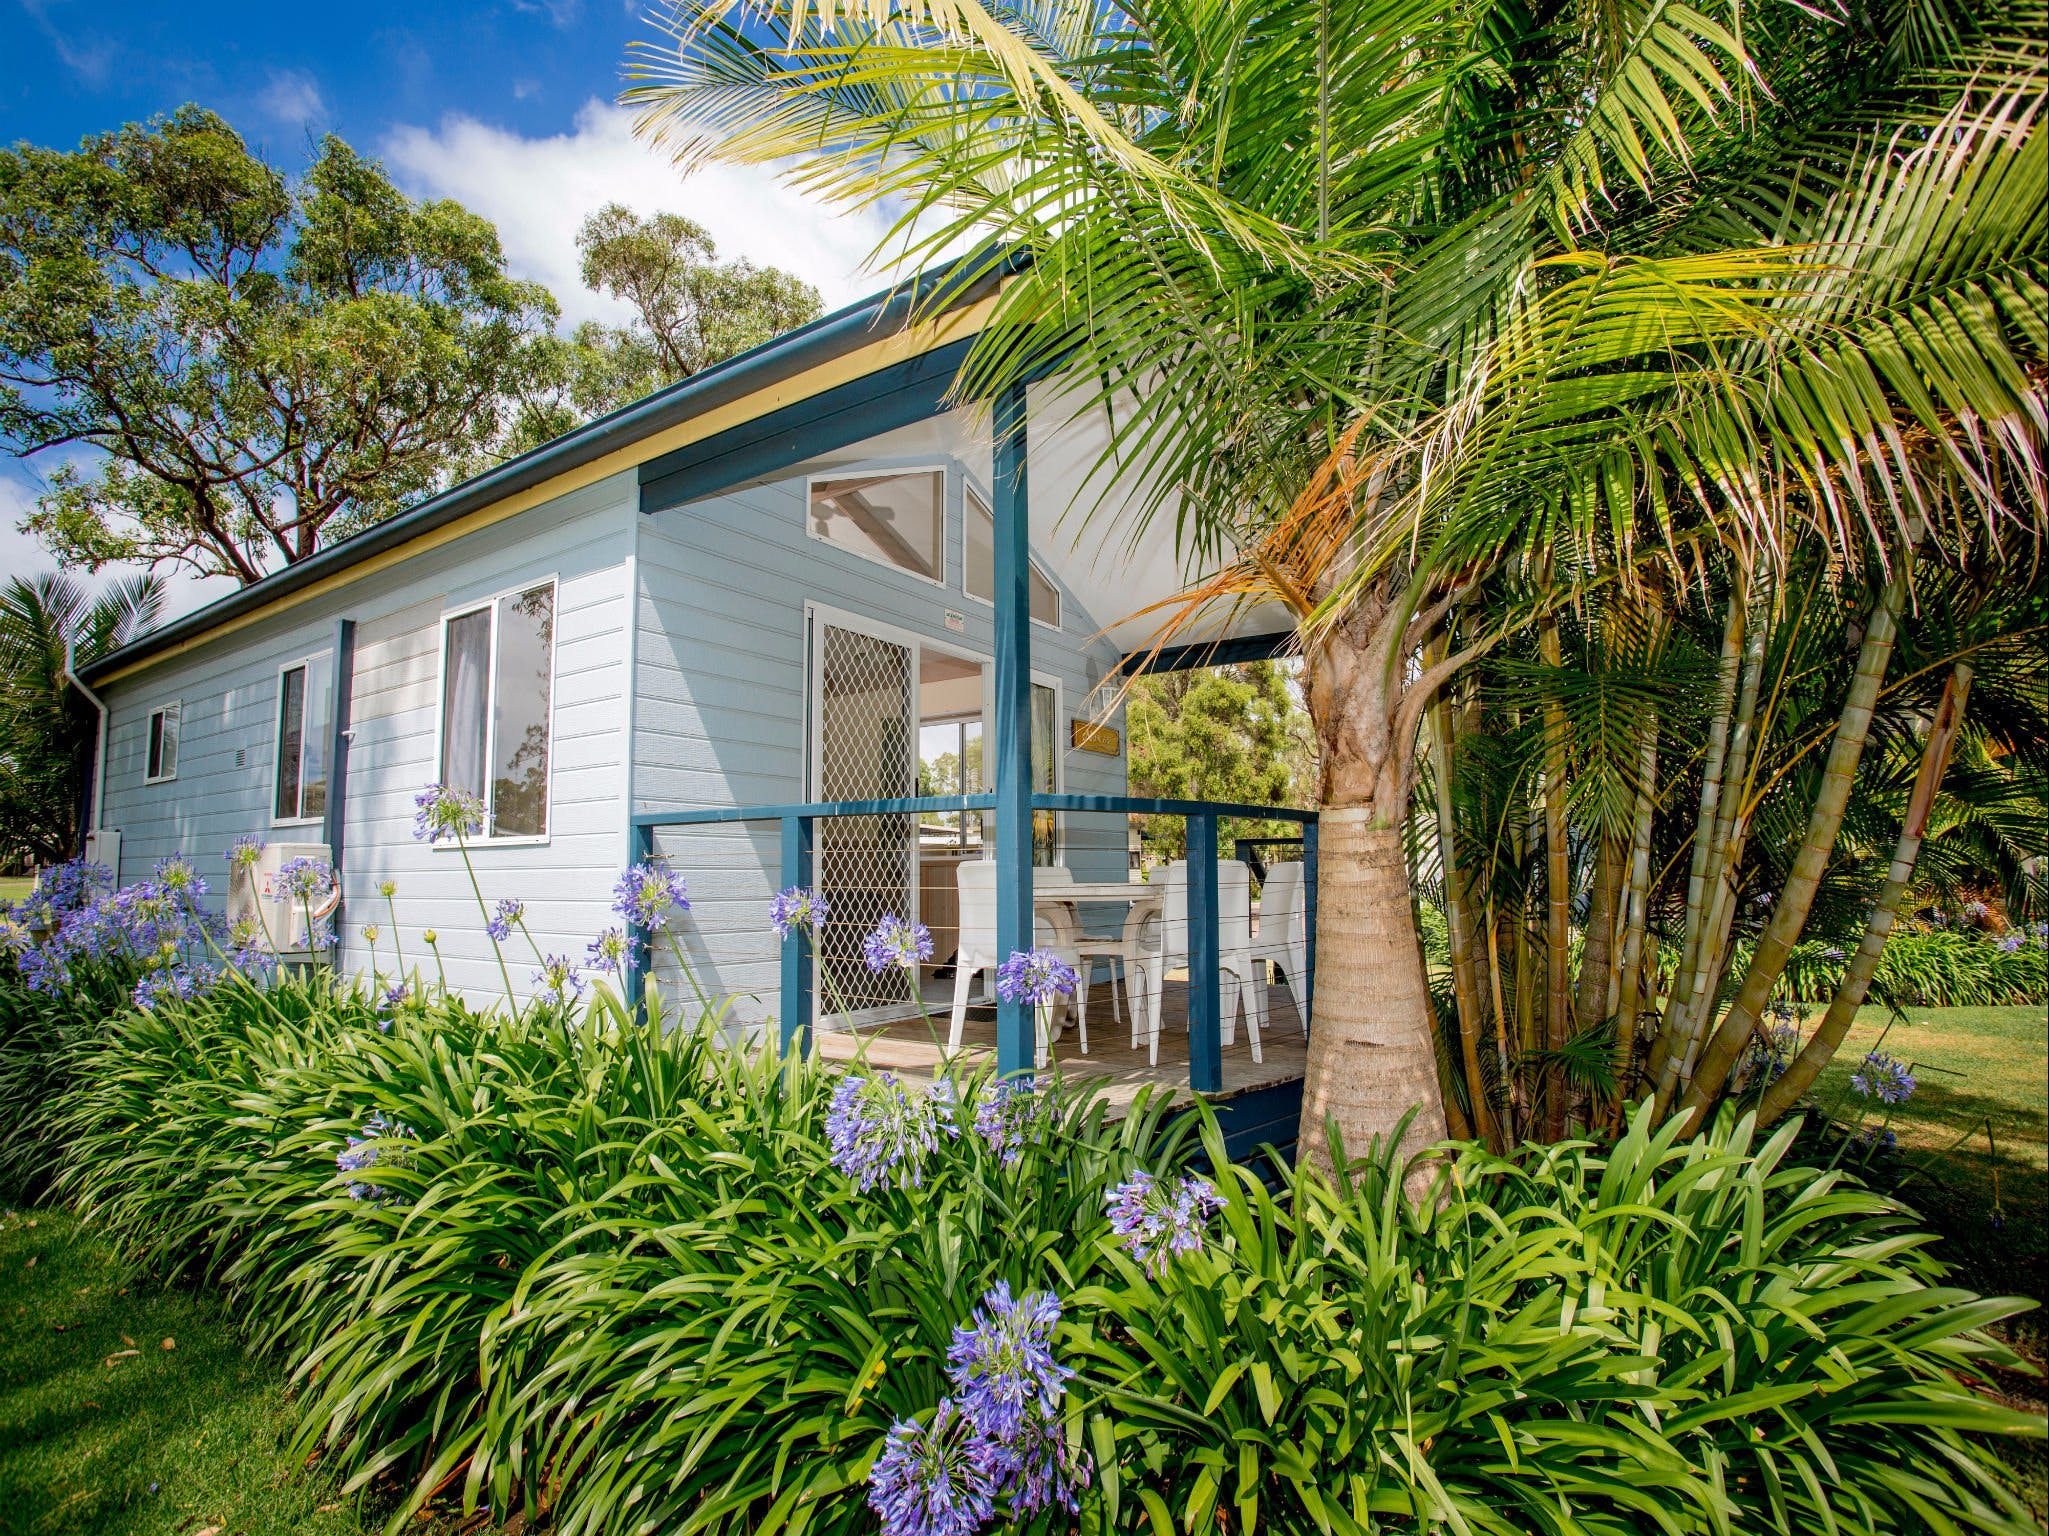 Ingenia Holidays Lake Macquarie - Accommodation in Surfers Paradise